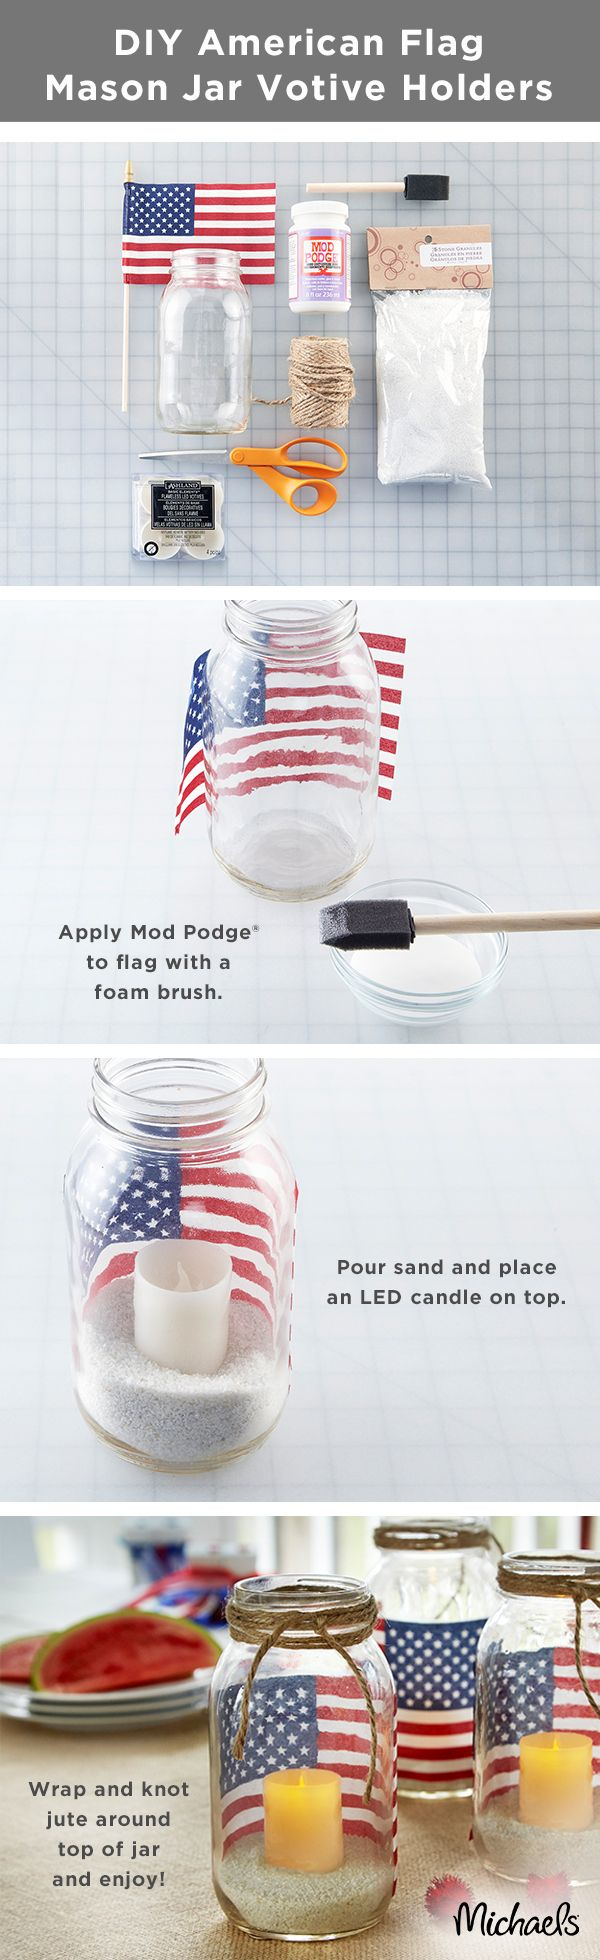 Brighten your home or patio with these patriotic DIY American Flag Mason Jar Votive Holders in just three simple steps. First apply the adhesive to the flag with a foam brush and adhere to the jar. Then pour in the sand and place an LED candle on top. Finally, wrap and knot jute around the top of the jar and enjoy! They are the perfect decoration for a backyard BBQ or a summer dinner at home. Find everything you need at your local Michaels and make your Independence Day celebration fun…